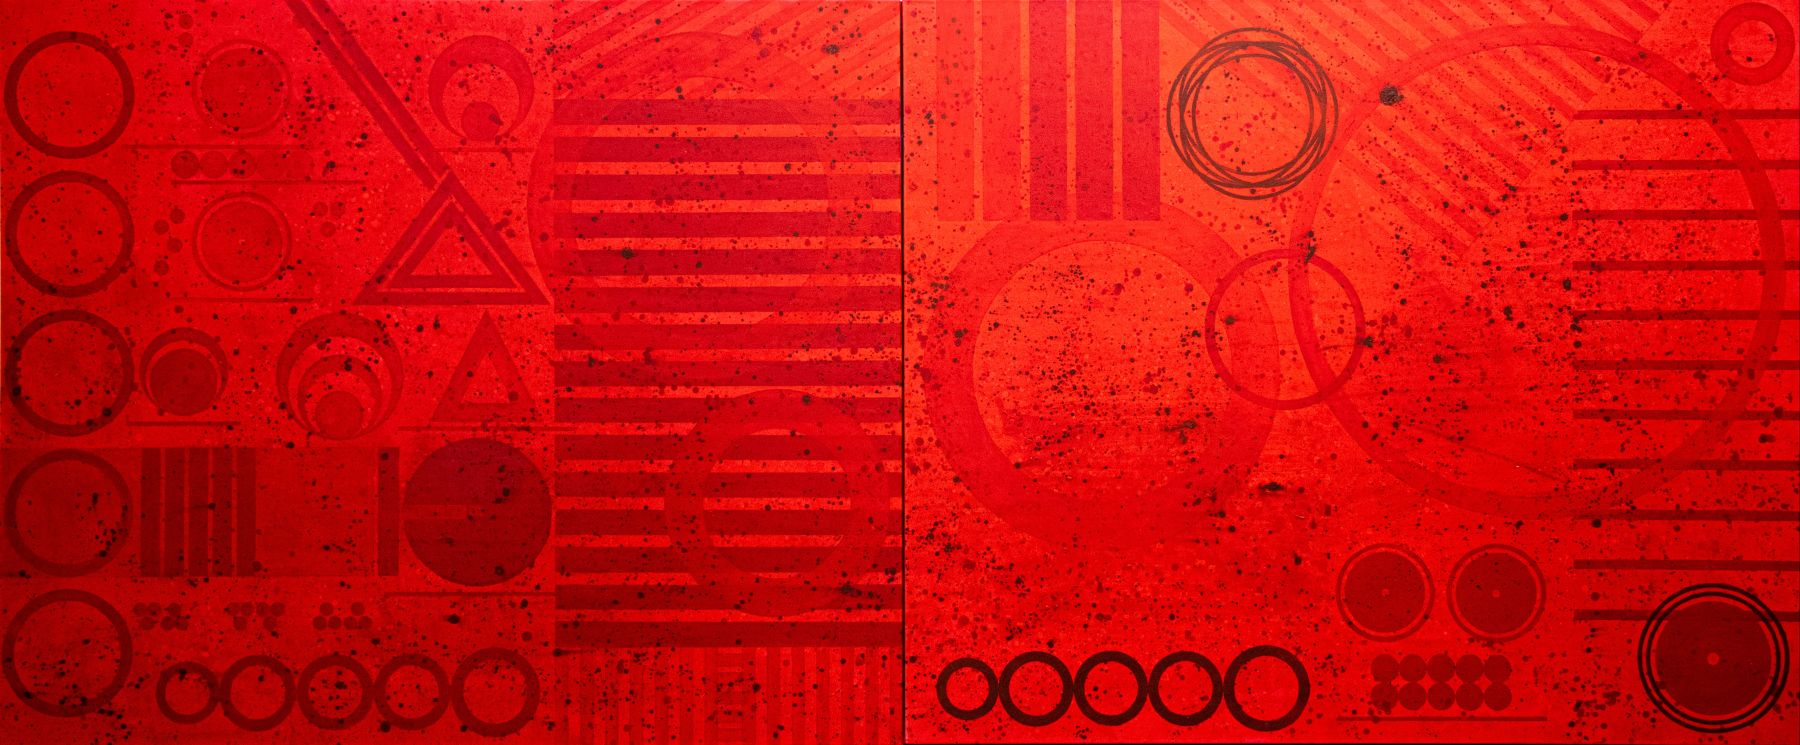 J. Steven Manolis, REDWORLD GLAZE (Self Portrait), 2020, 60H x 144W, Acrylic on Canvas, Abstract expressionism paintings for sale at Manolis Projects Art Gallery, Miami, Fl